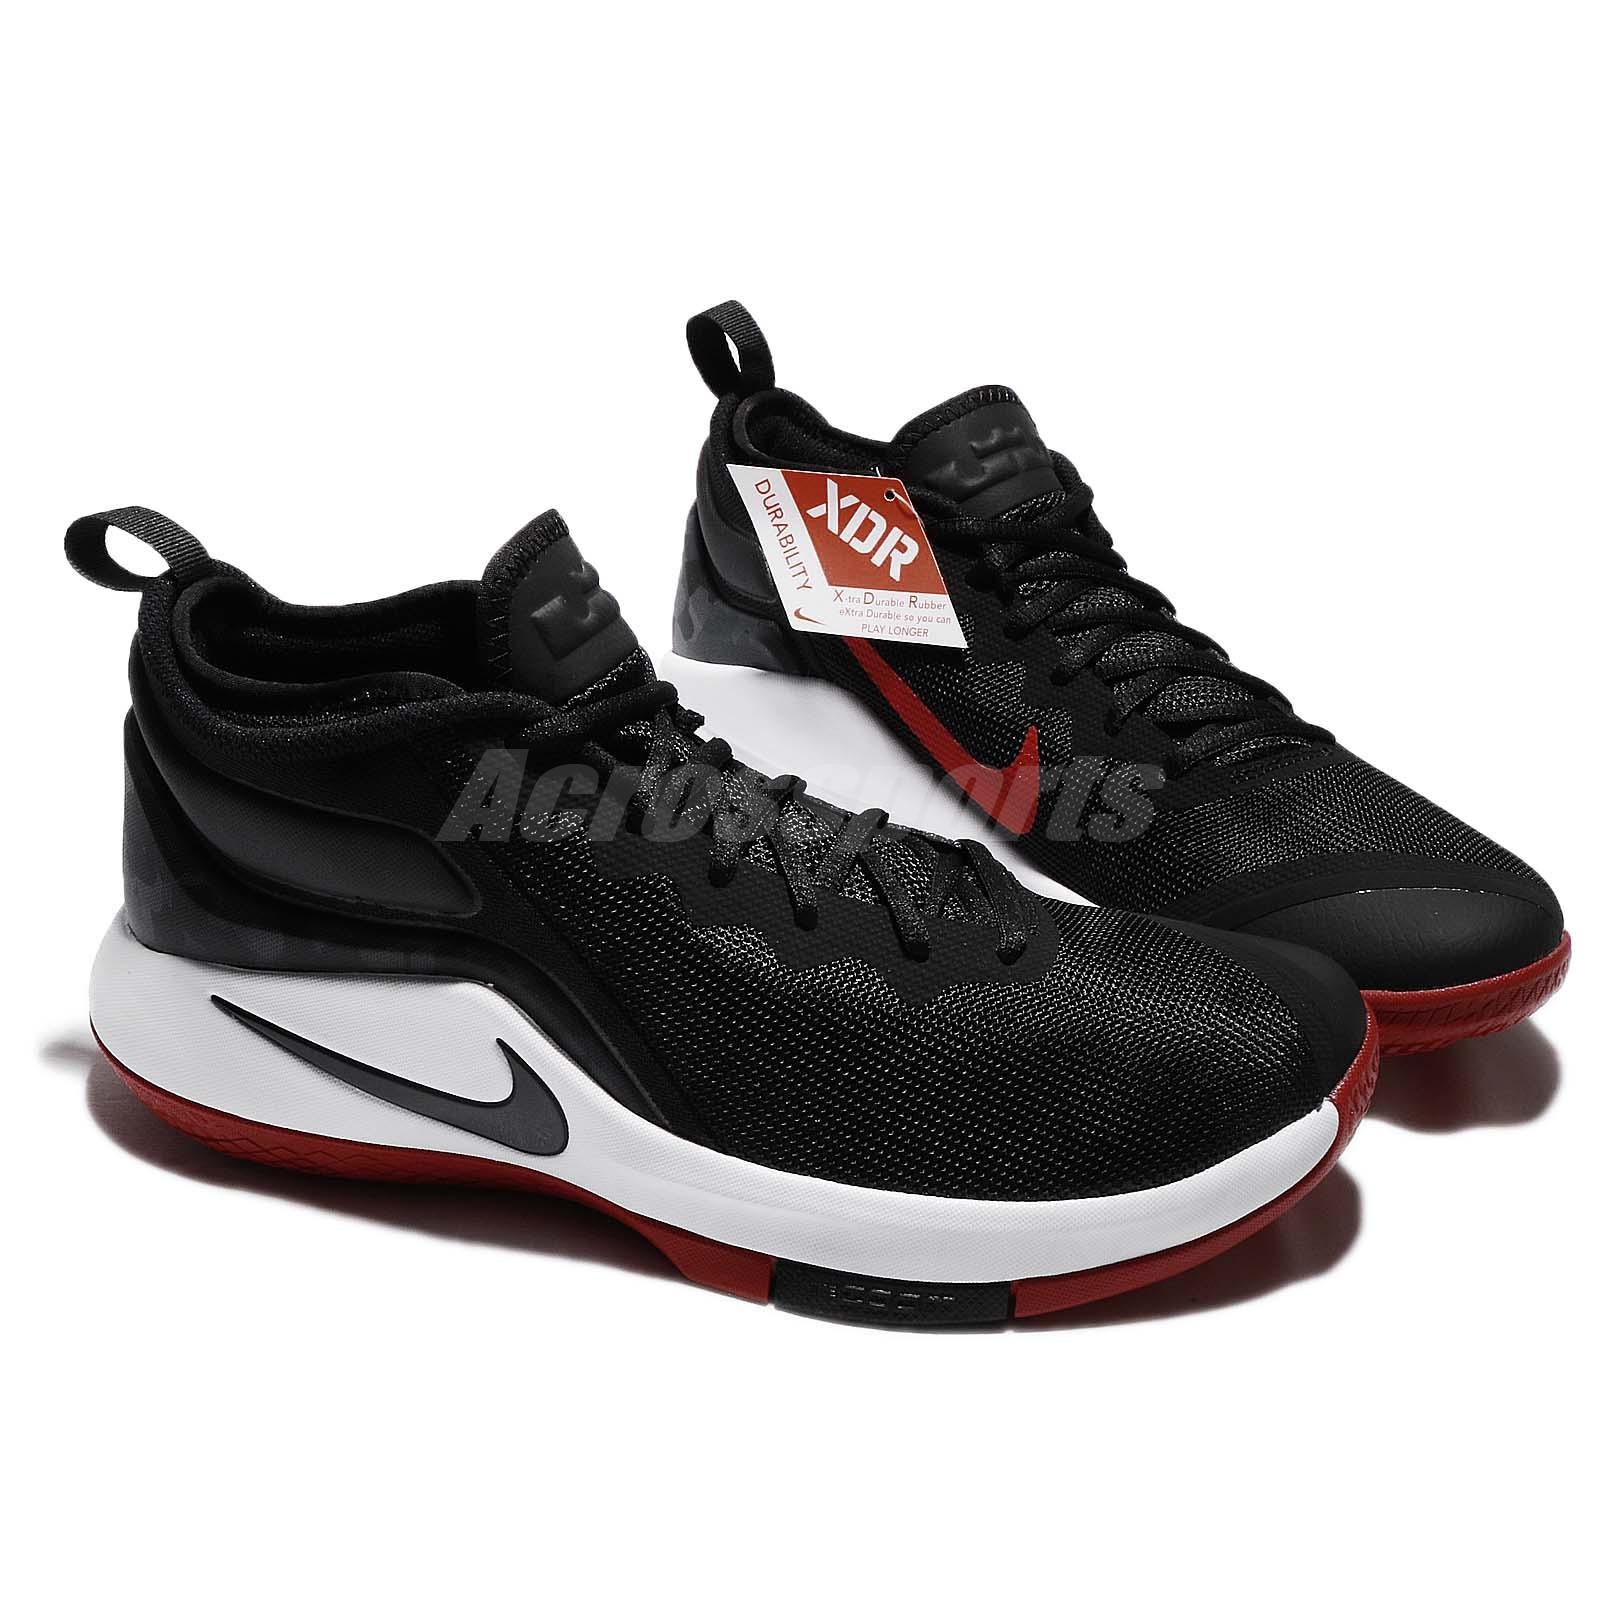 e95e3c76984c switzerland nike lebron witness ii ep 2 james bred black red men basketball  shoe 21619 ee7ab